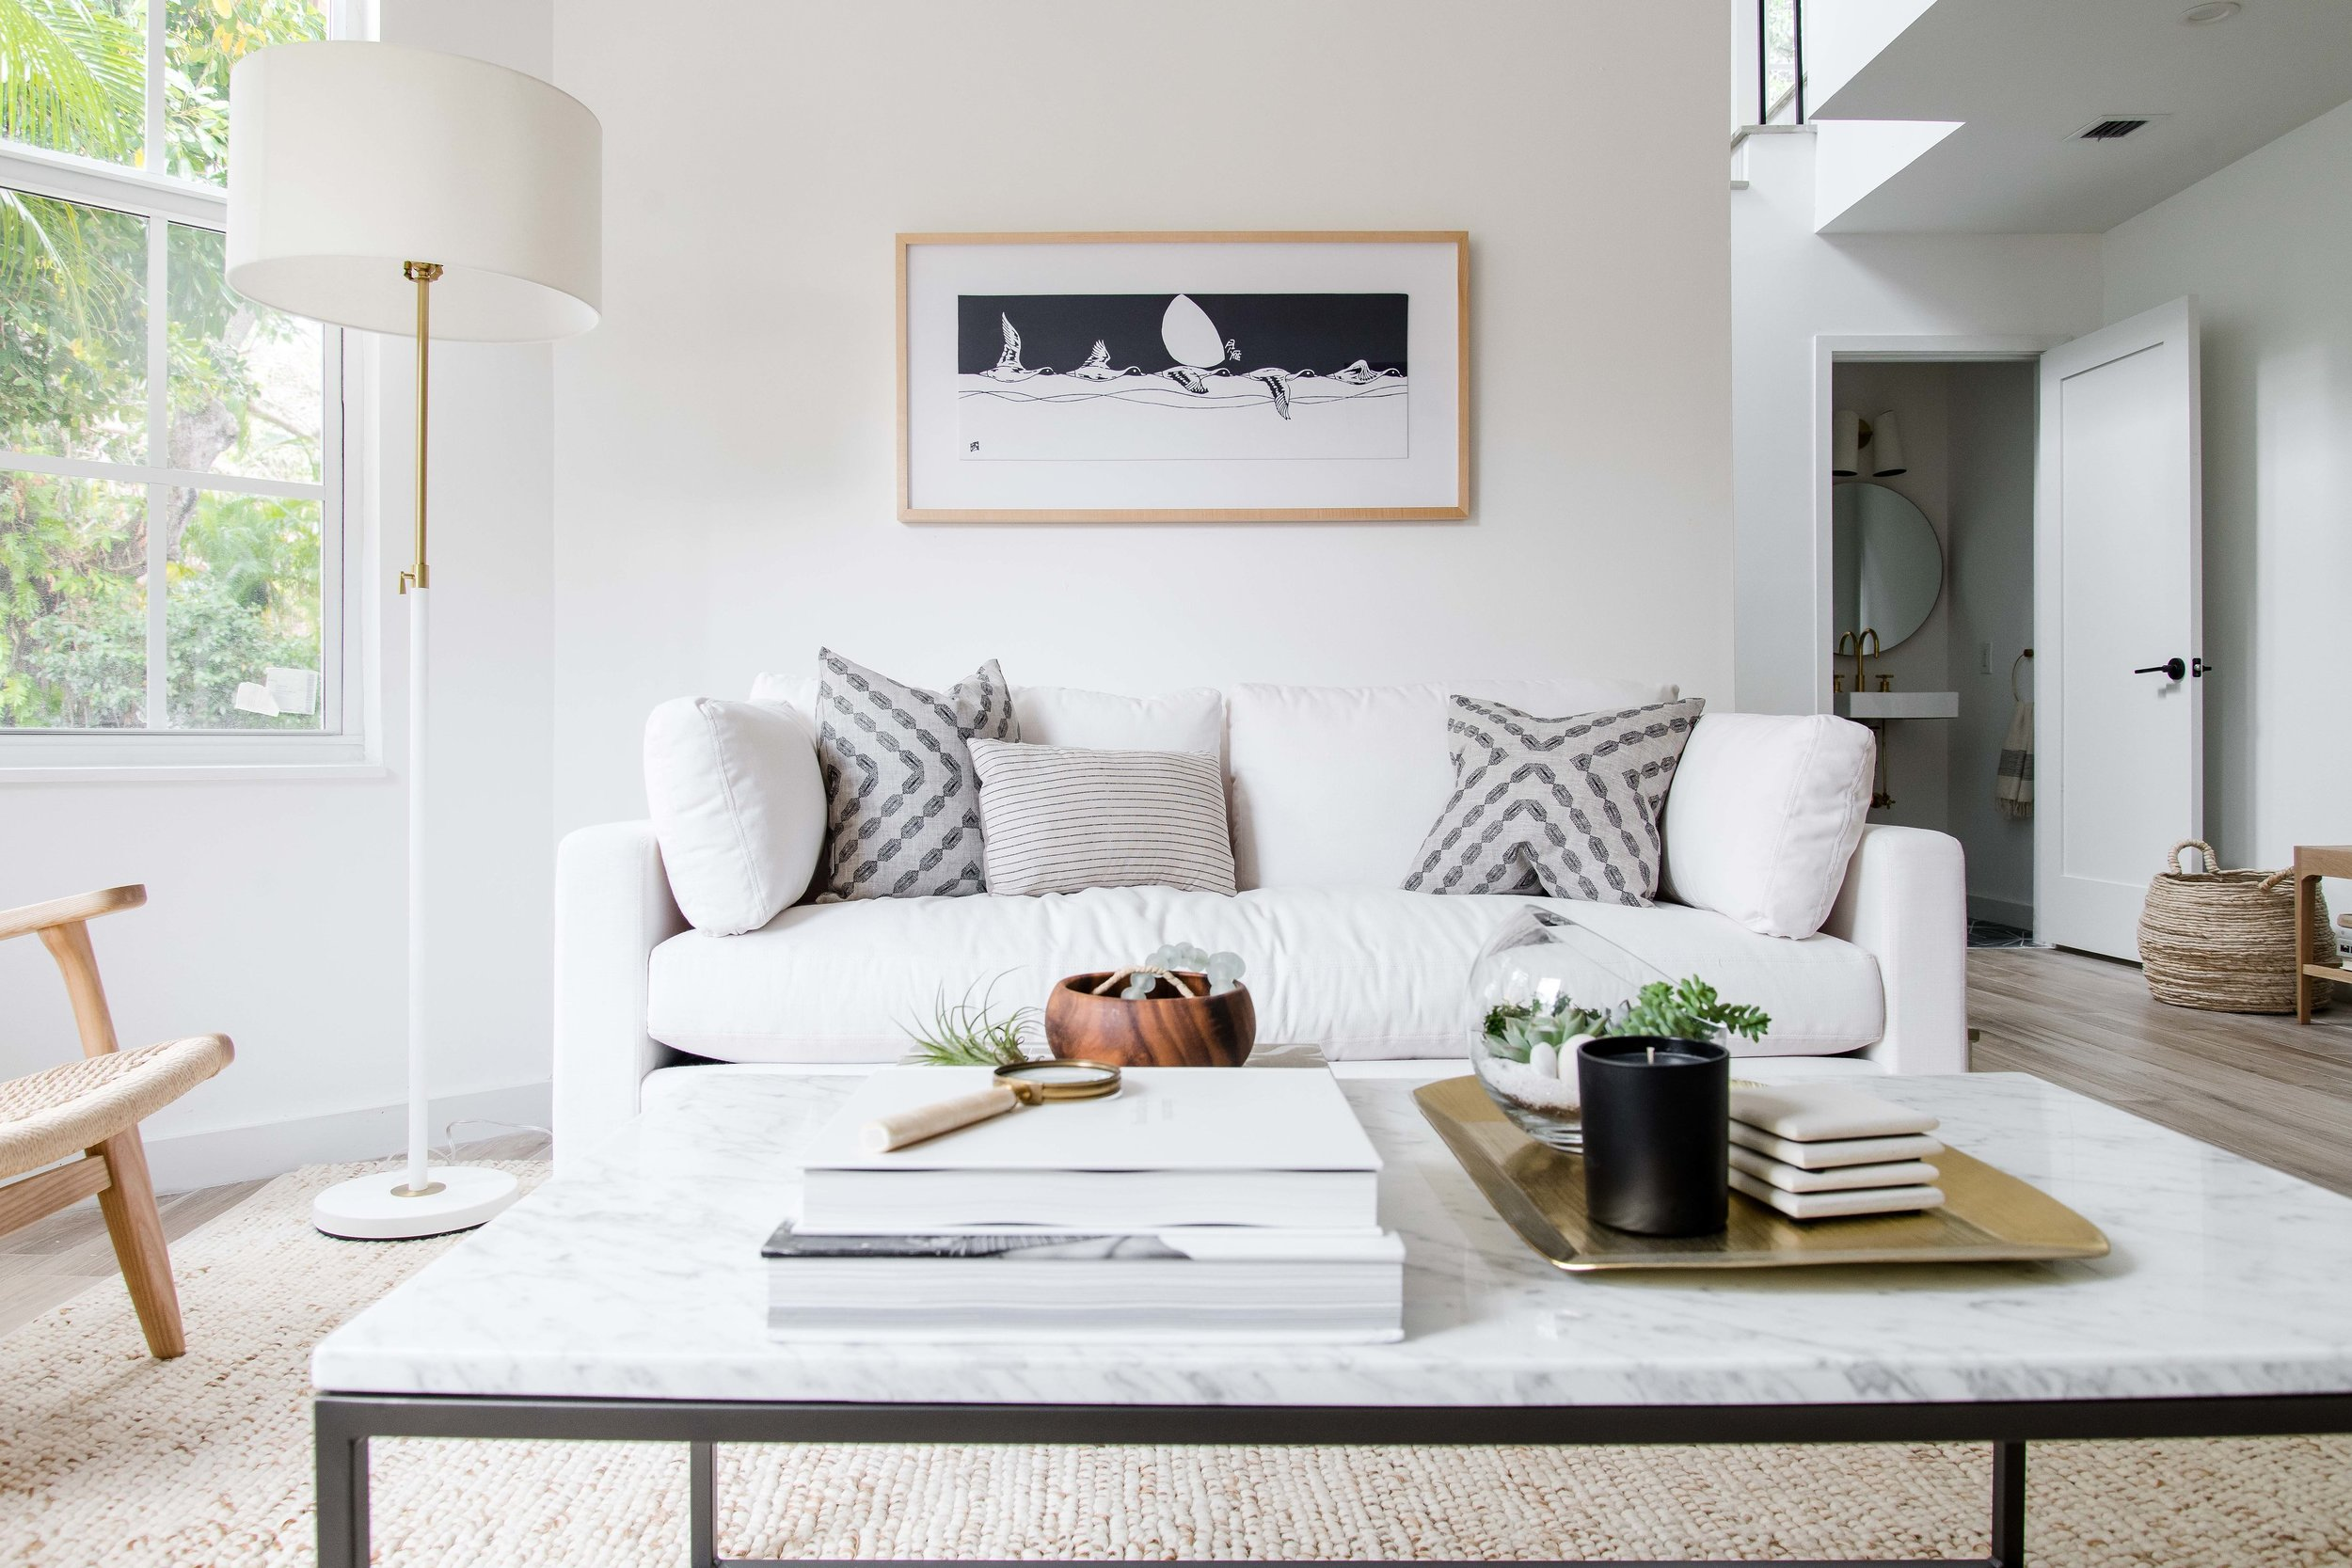 modern neutral living room  - the habitat collective interior design - #projectpeachy